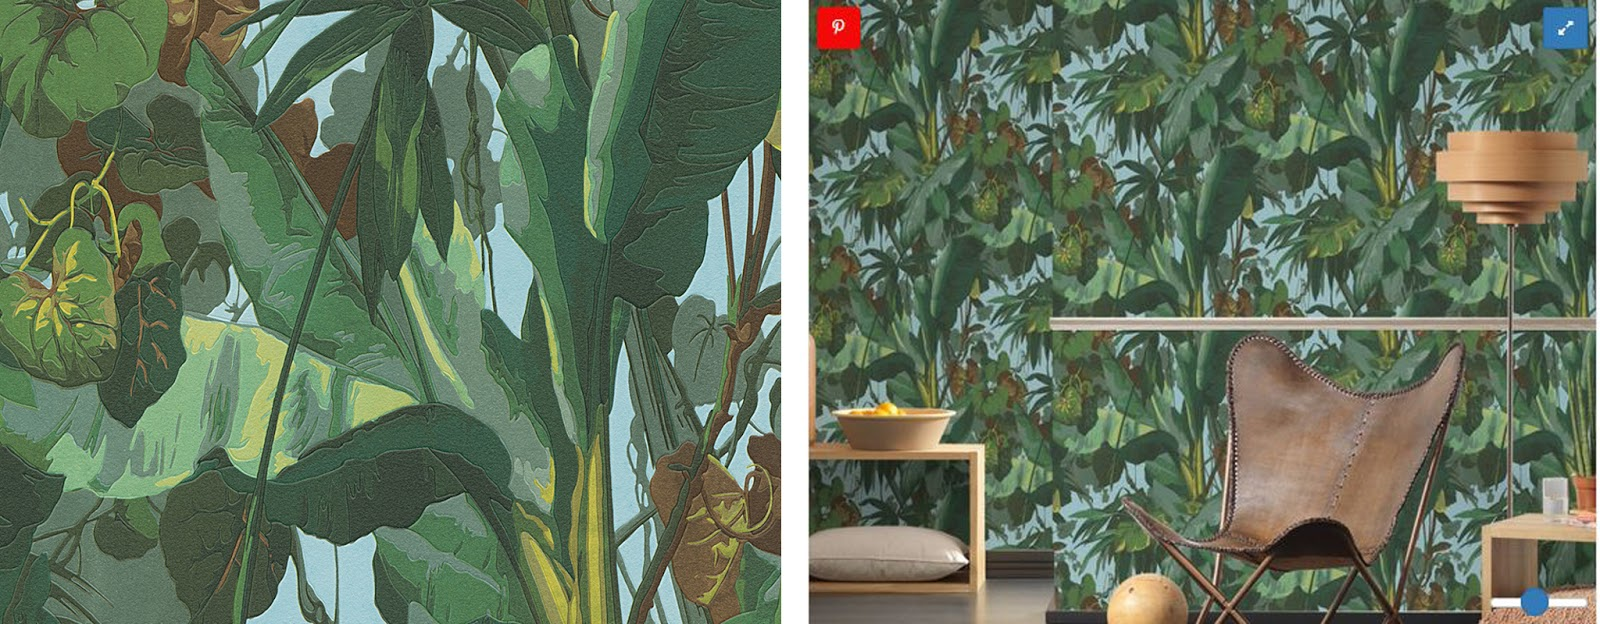 Dschungel Tapete Mayalade Design Trends 2016 Urban Jungle